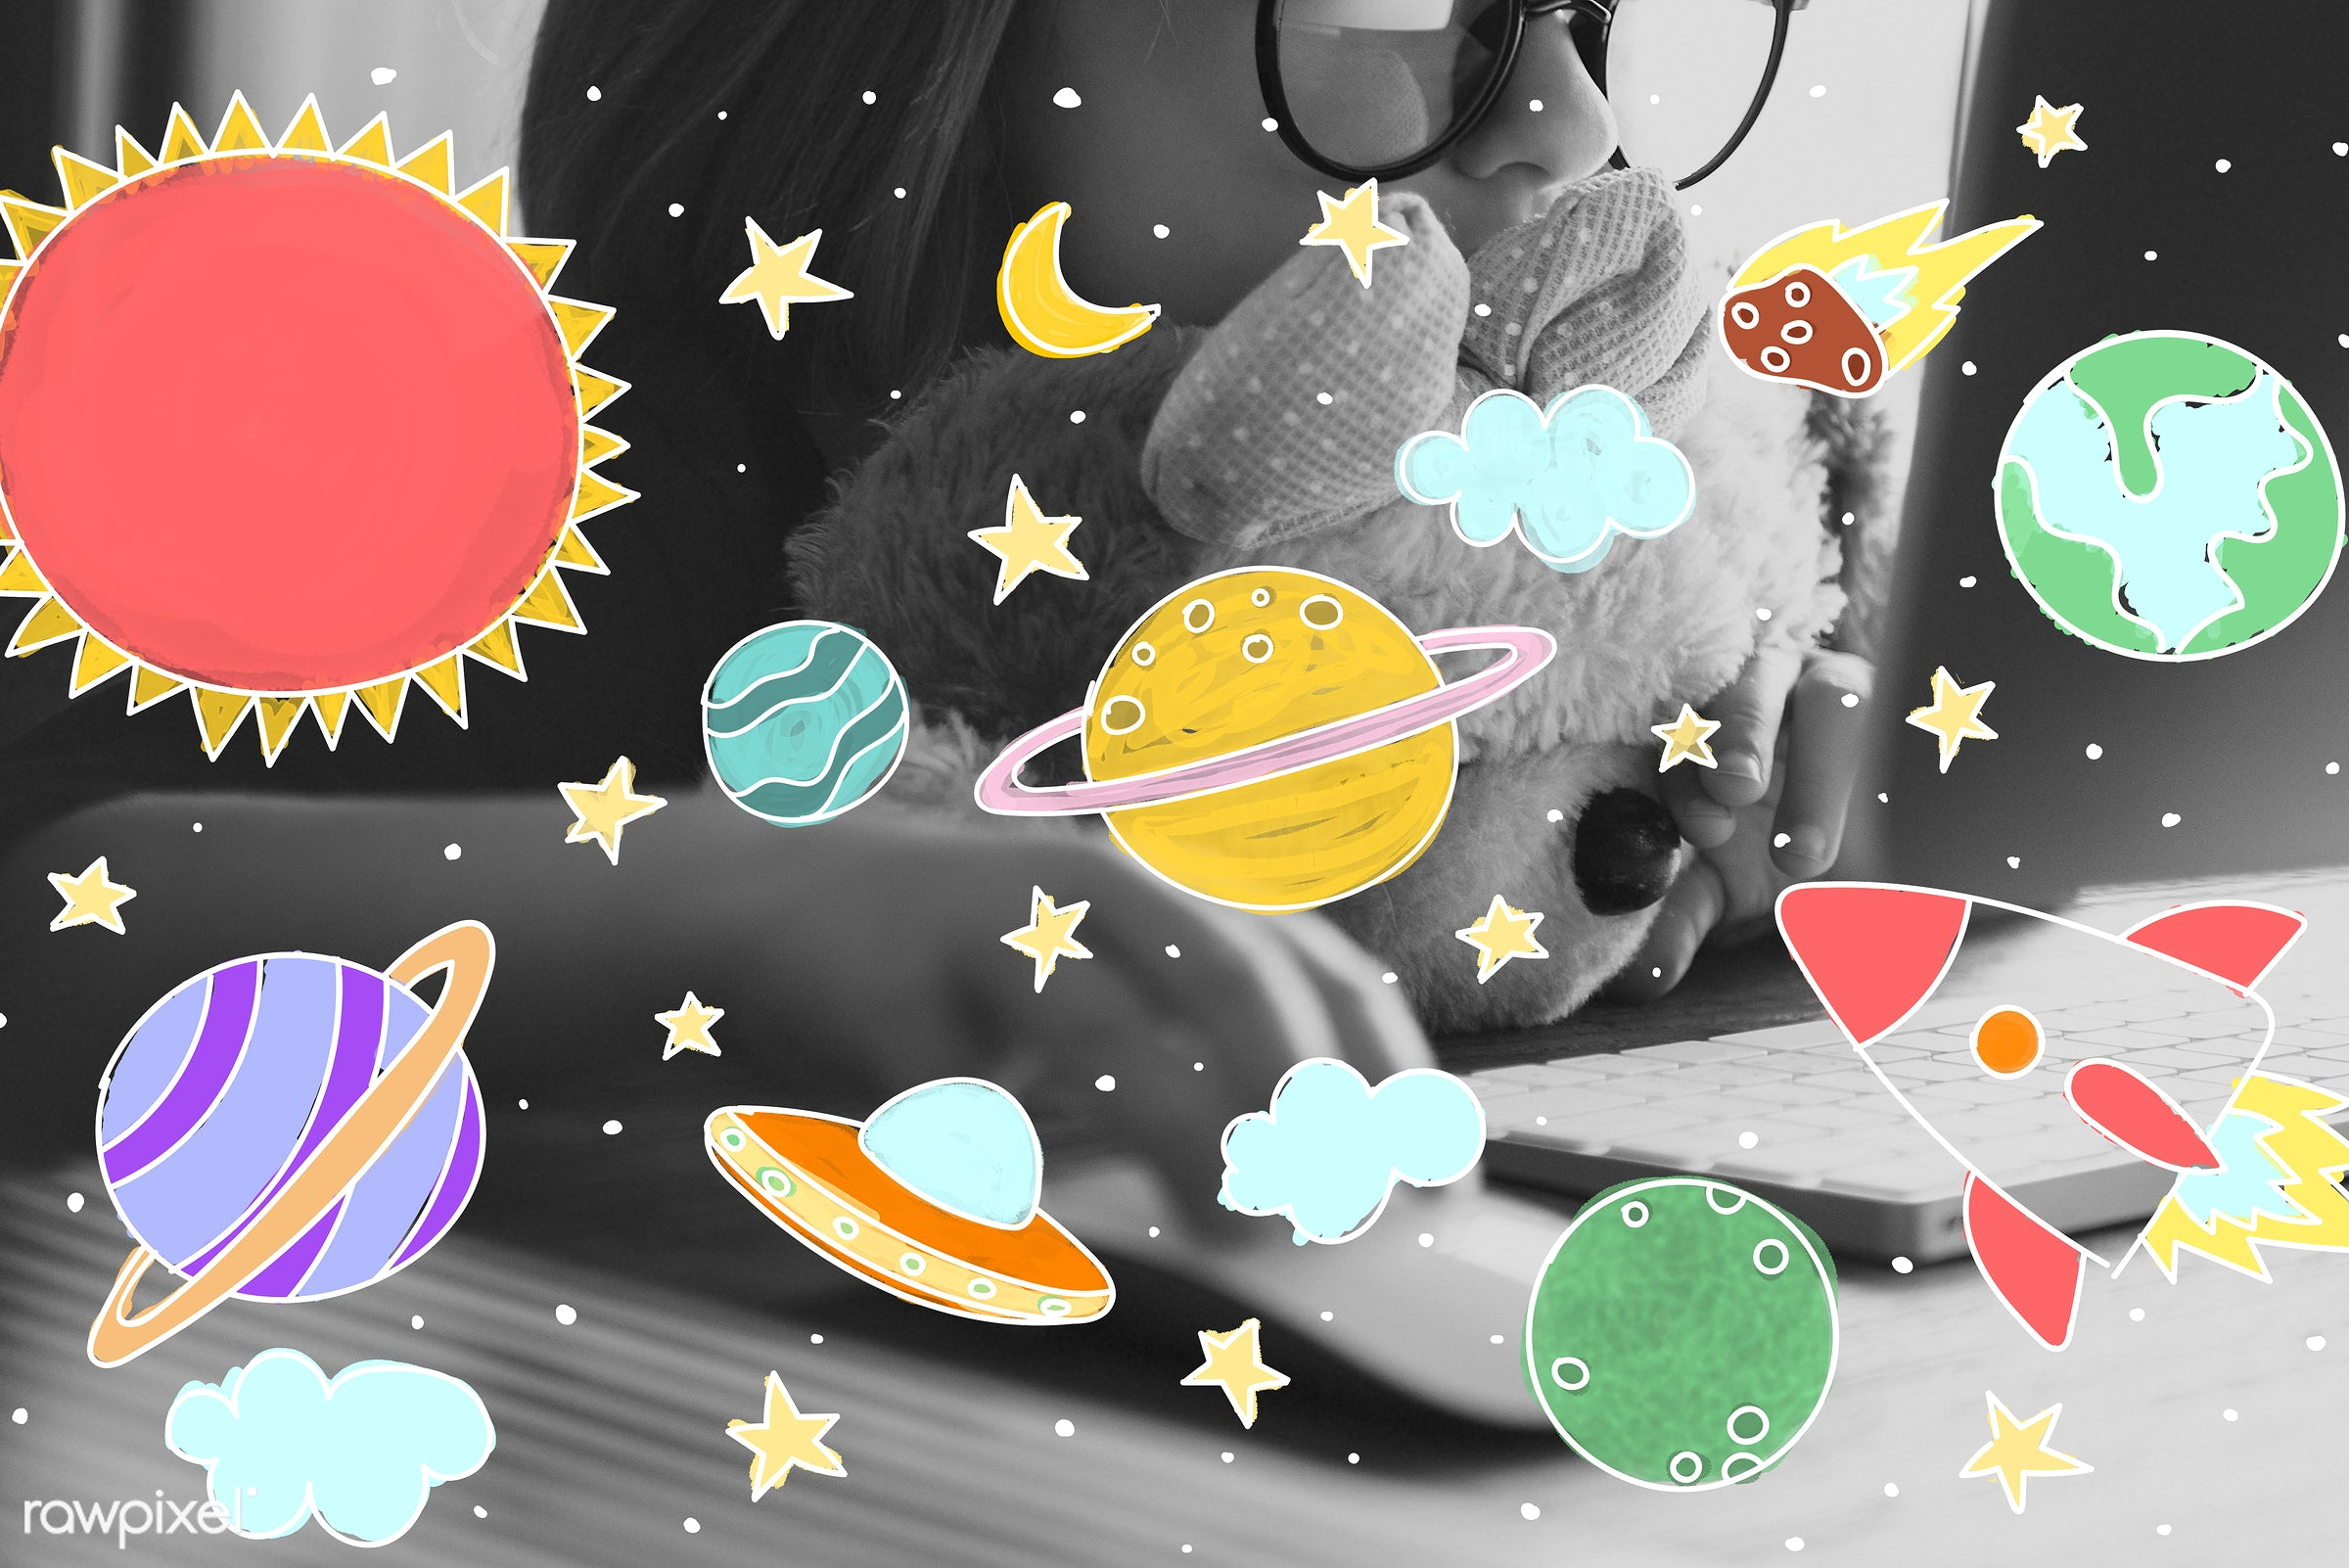 astrology, astronomy, browse, browsing, child, childhood, computer, cosmos, curiosity, drawing, education, elearning,...